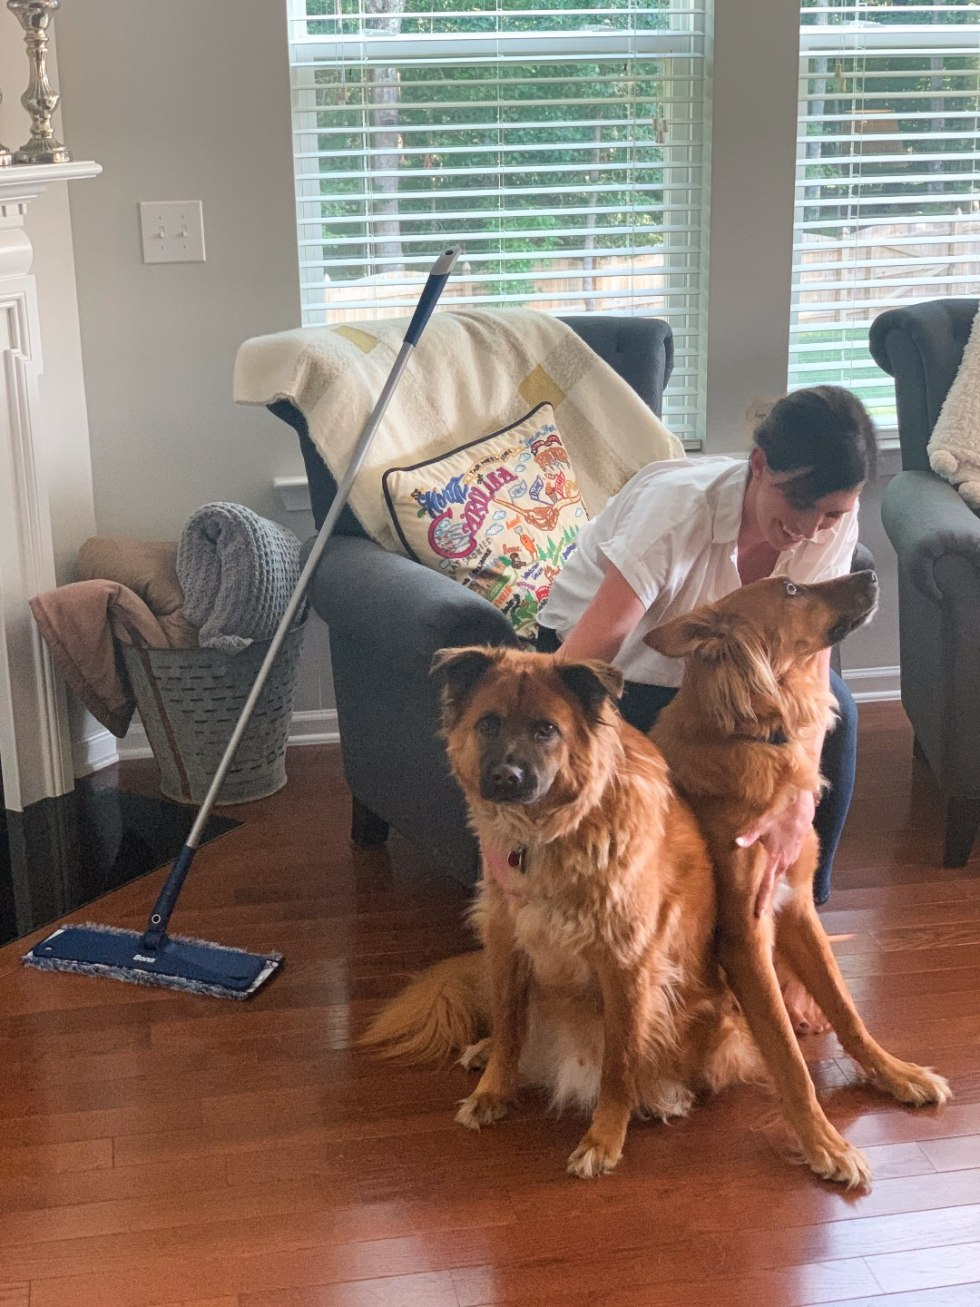 Keeping Our Floors Clean with Bona Essentials - I'm Fixin' To - @mbg0112 | Keeping Our Floors Clean with Bona Essentials by popular lifestyle blog, I'm Fixin' To: image of a woman sitting in an arm chair with her two large dogs at her feet and a Bona Essentials mop propped up against the chair.